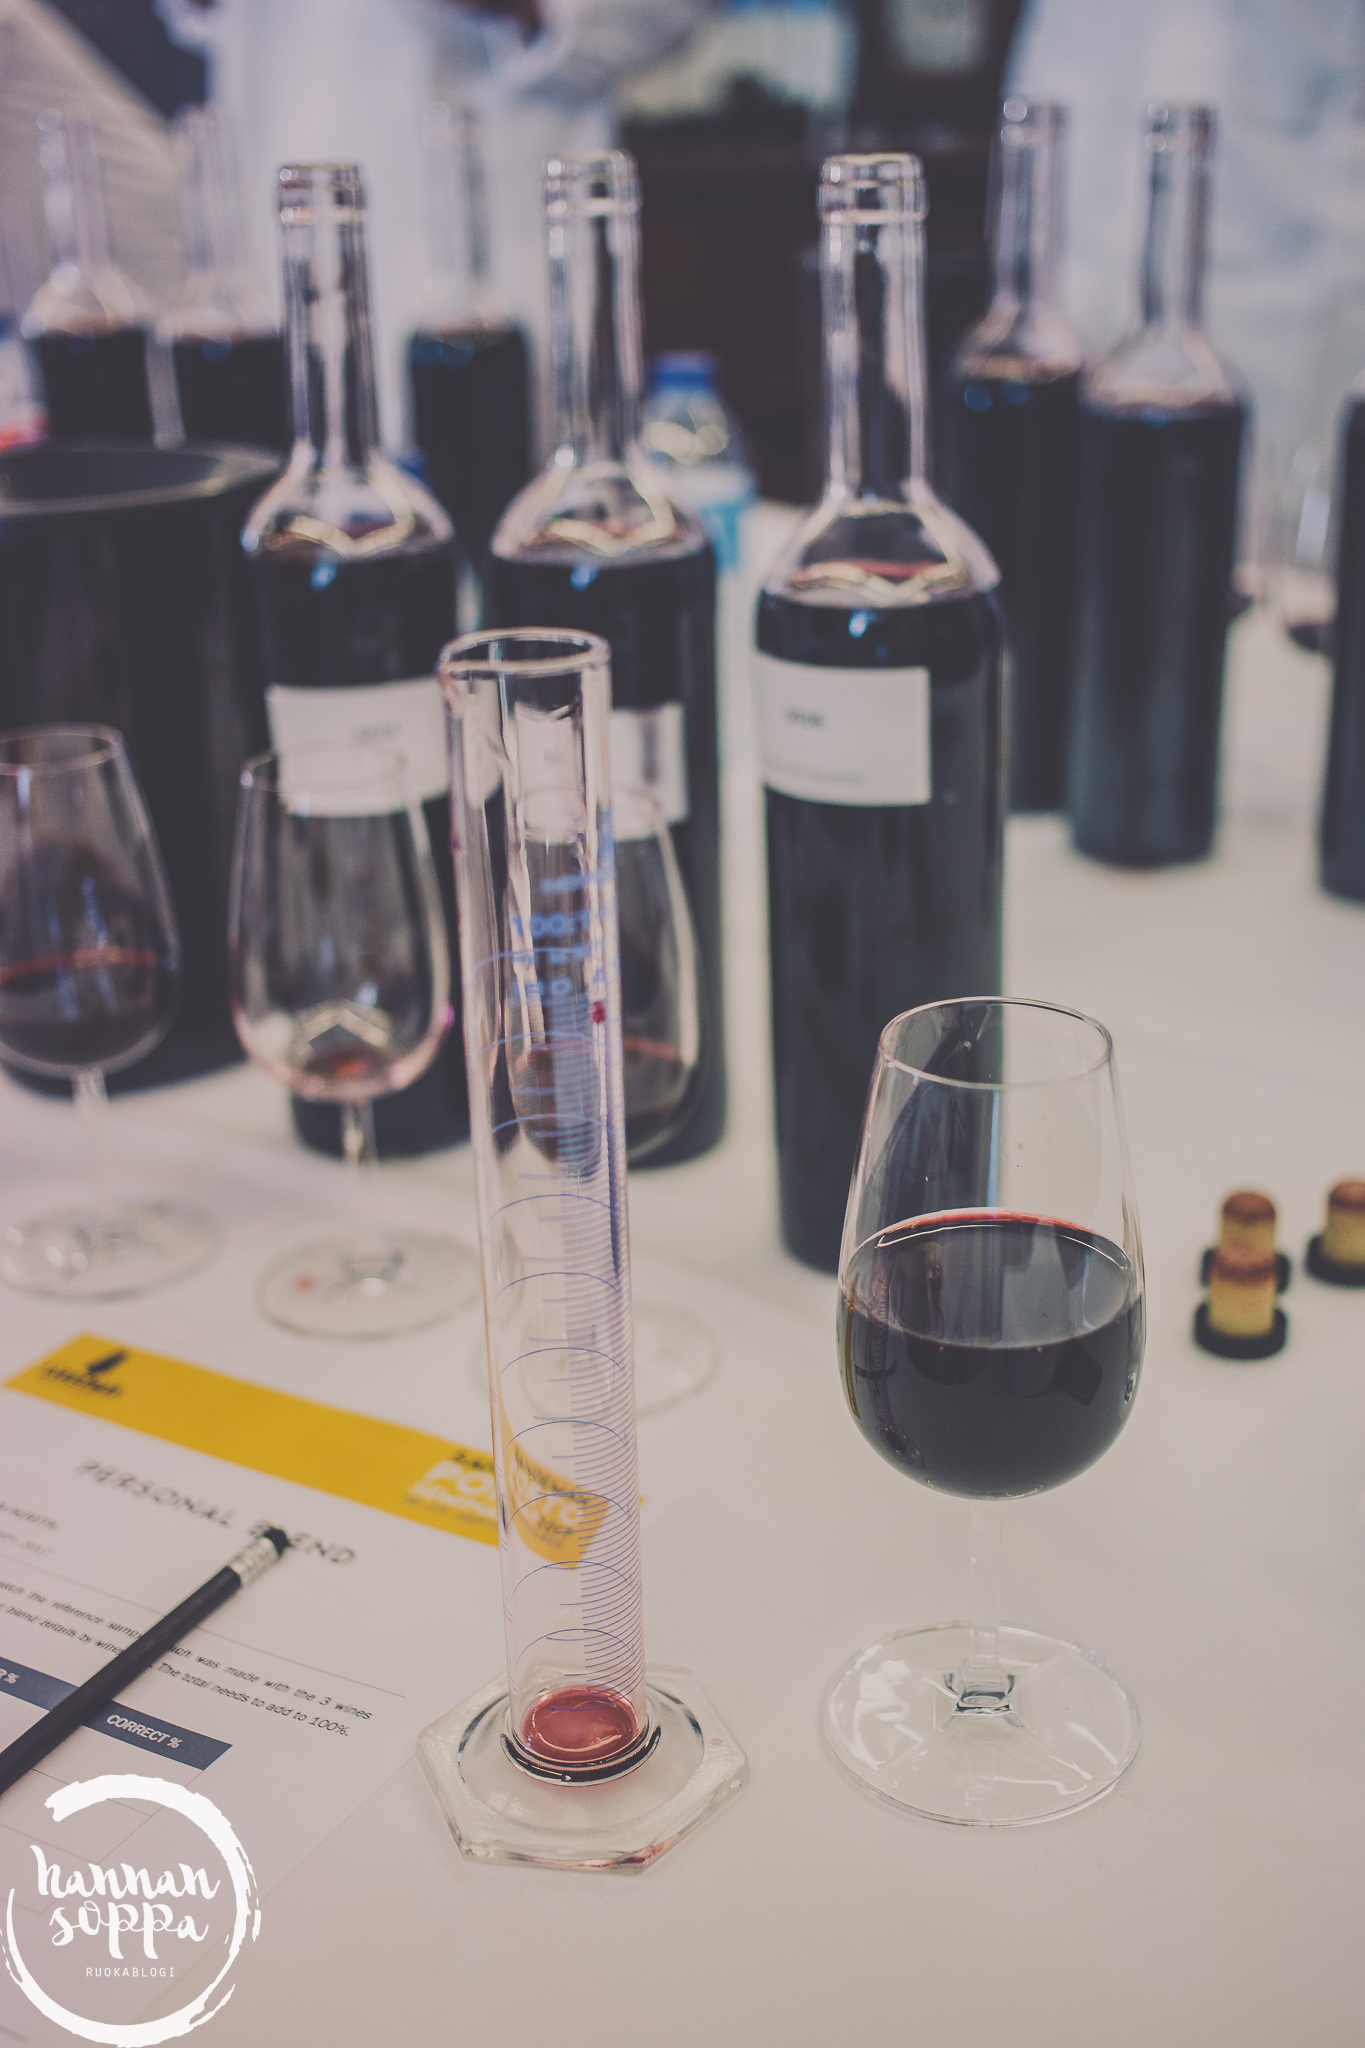 port wine blending / Hannan soppa